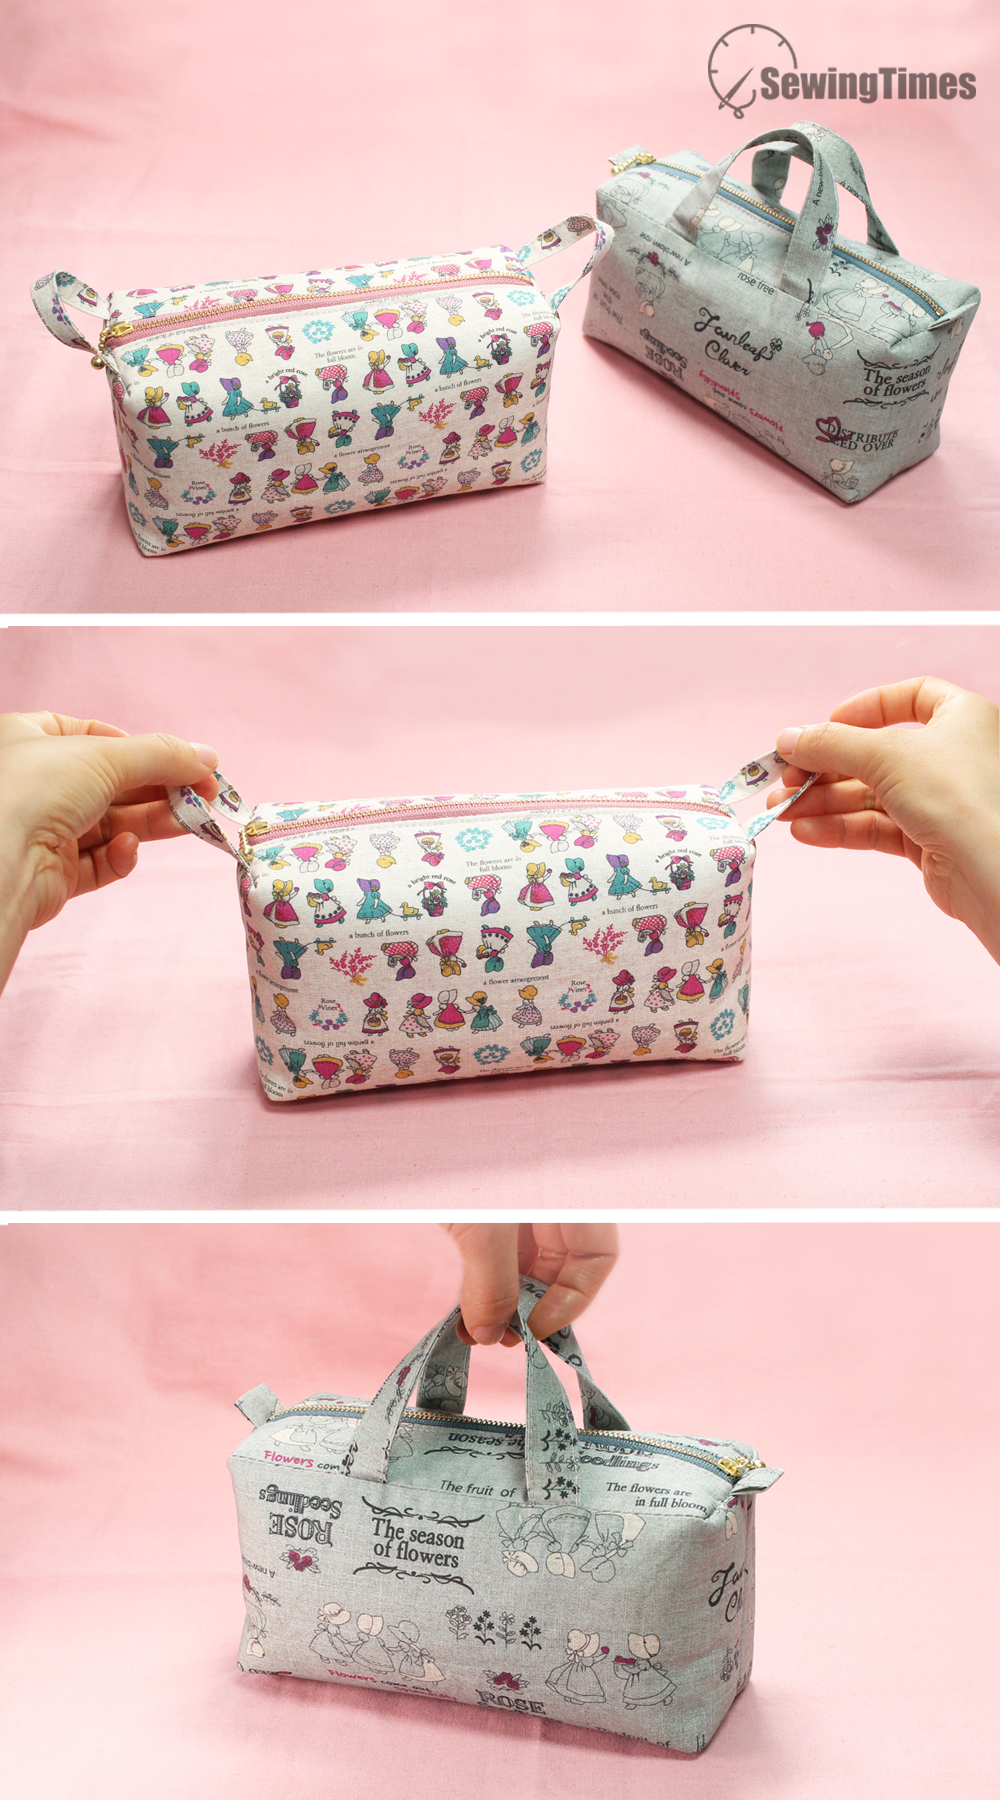 Diy Cute Zipper Coins Pouch Bag Tutorial Purse Woman Or Kids You Can Easy Sew Yourself Youtube Diy Pouch Bag Diy Bags Purses Pouch Diy